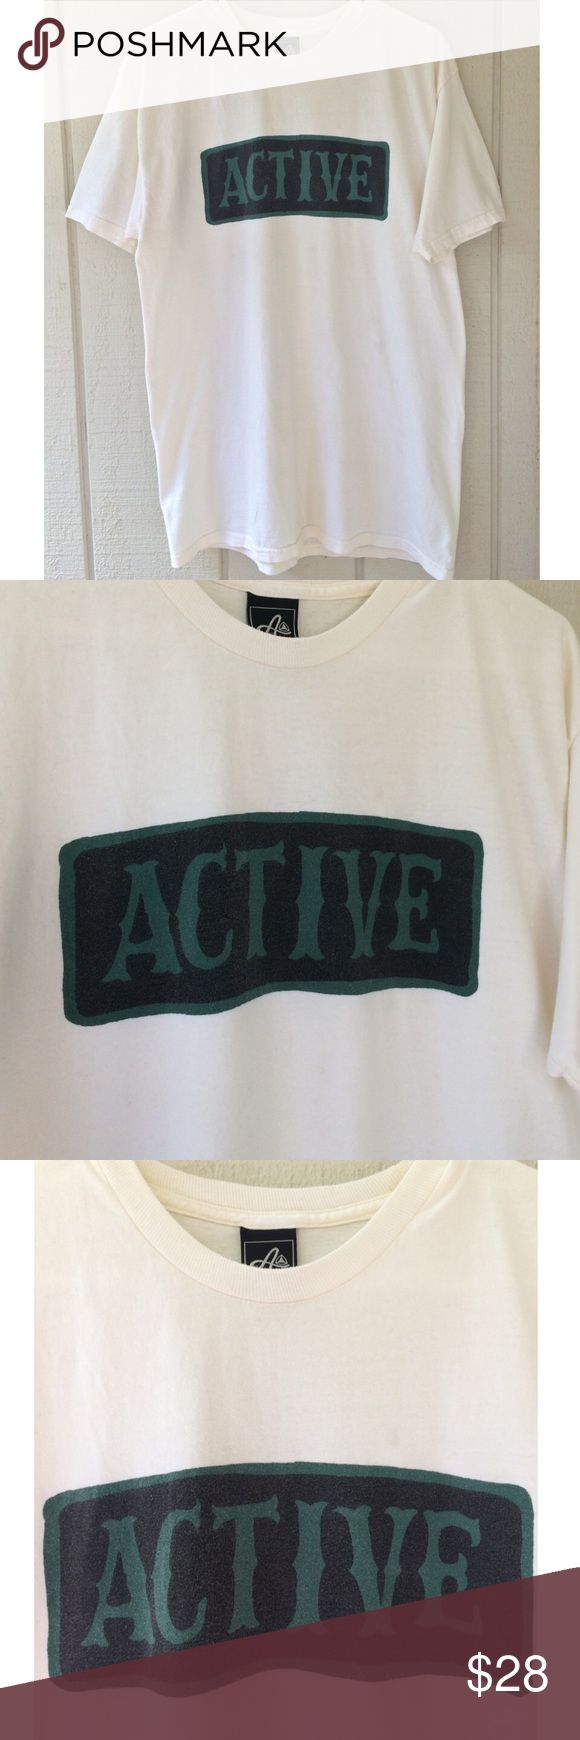 Active Skate Box Logo T-shirt Active skate brand. Size large. Cream off white color with green and black logo. Good condition light wear no significant flaws. FREE SURPRISE GIFT WITH EVERY ORDER! Active Ride Shop Shirts Tees - Short Sleeve